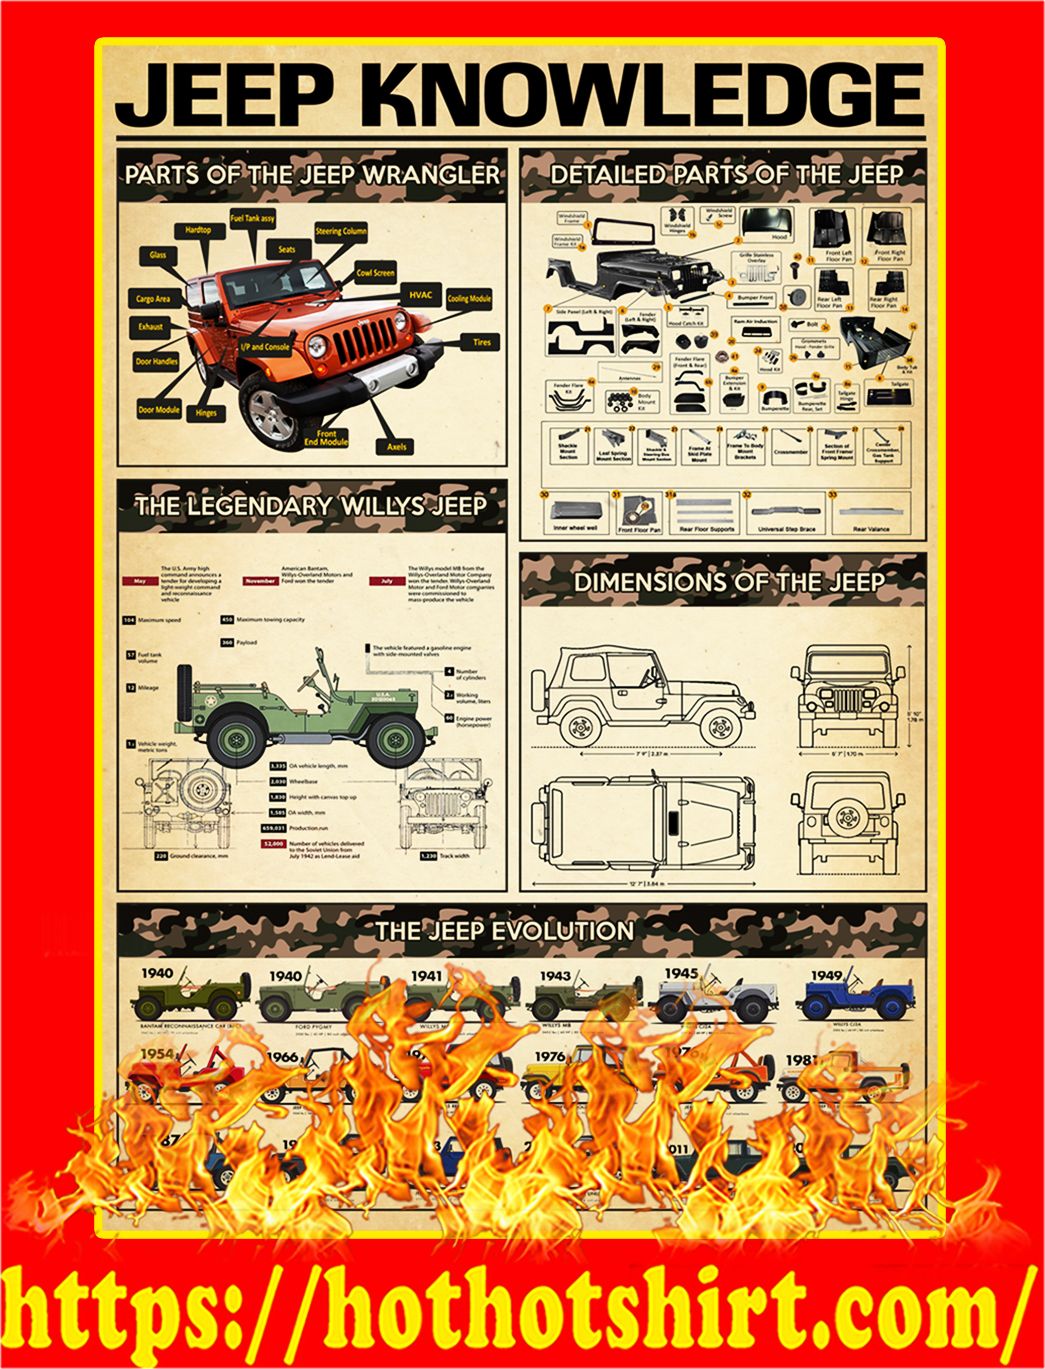 Jeep Knowledge poster - A2